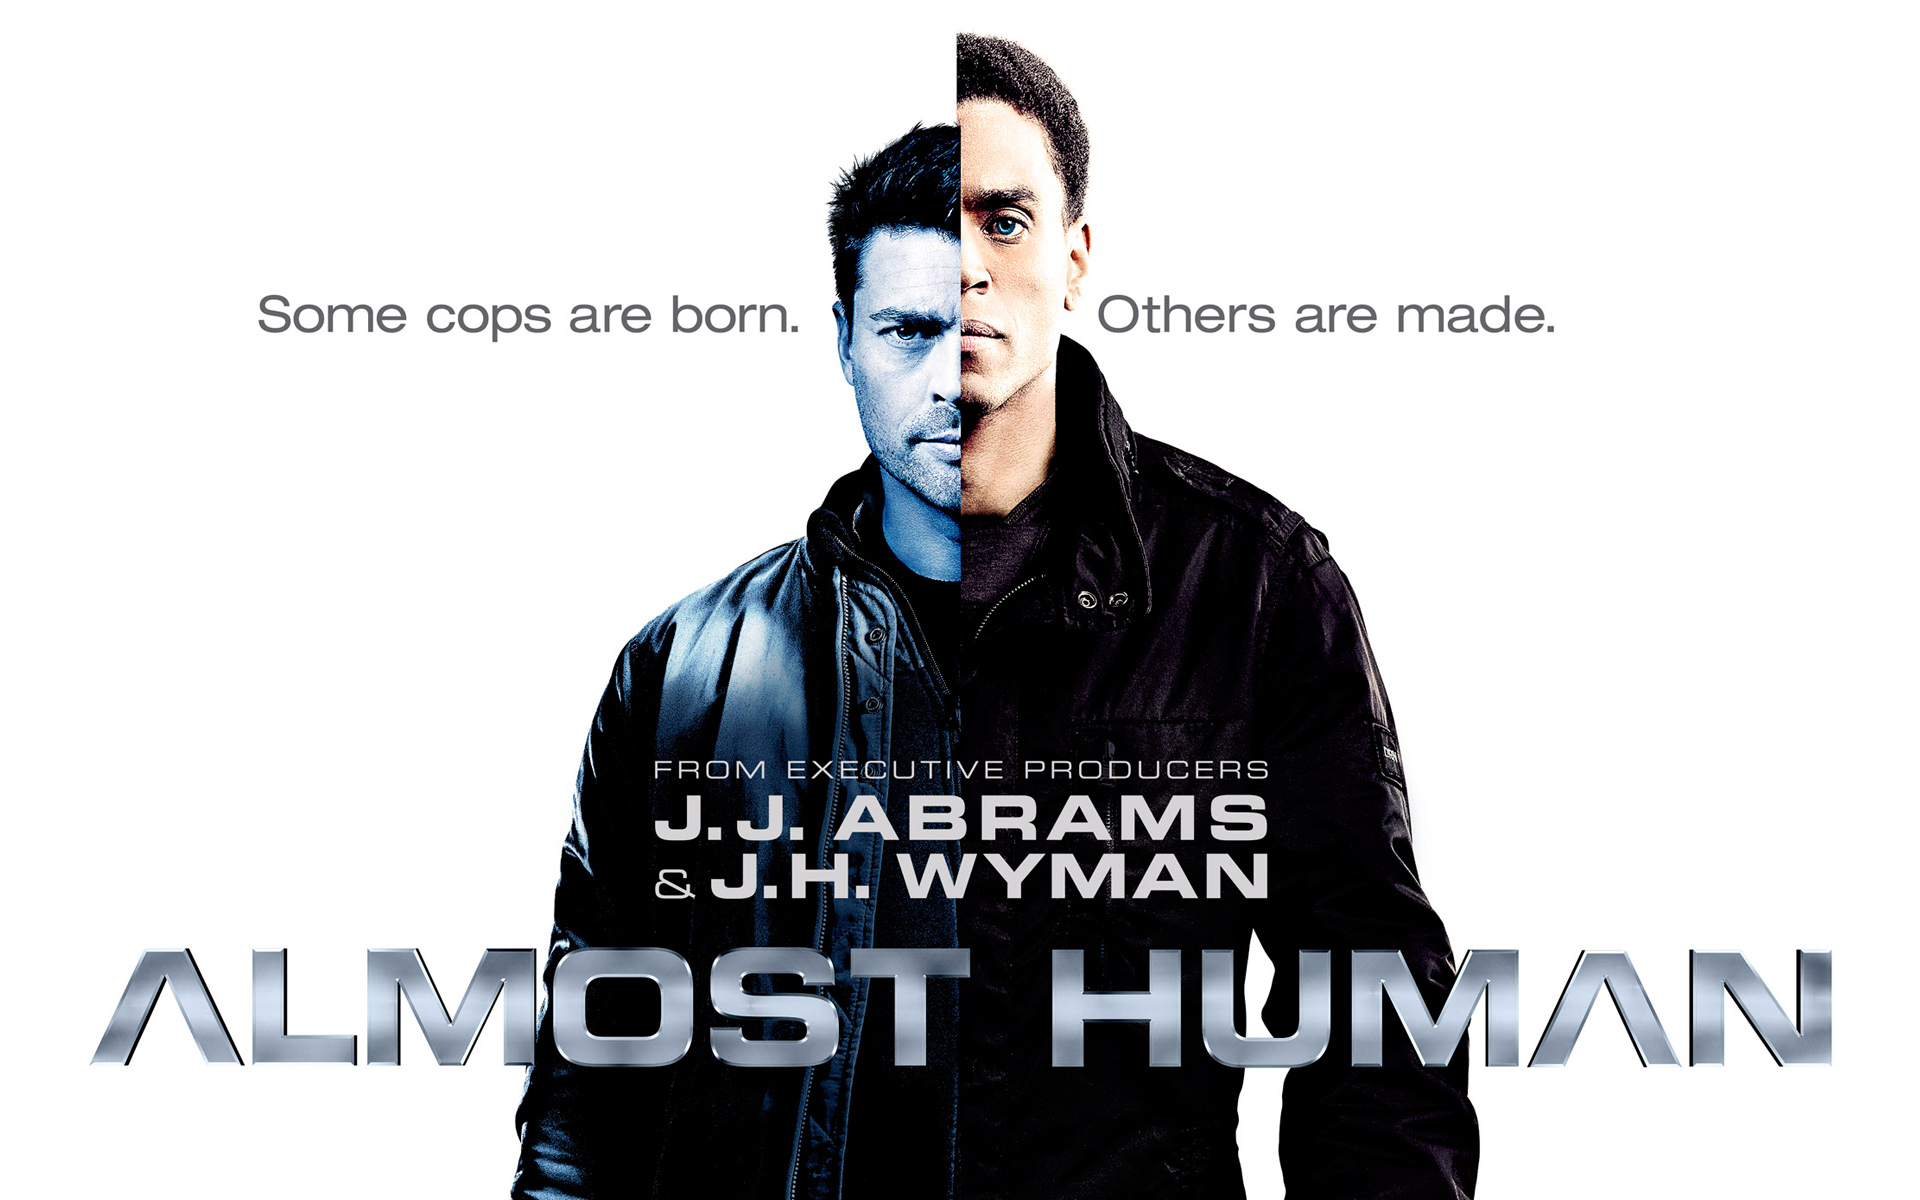 Almost Human 2013 TV Series 180.47 Kb